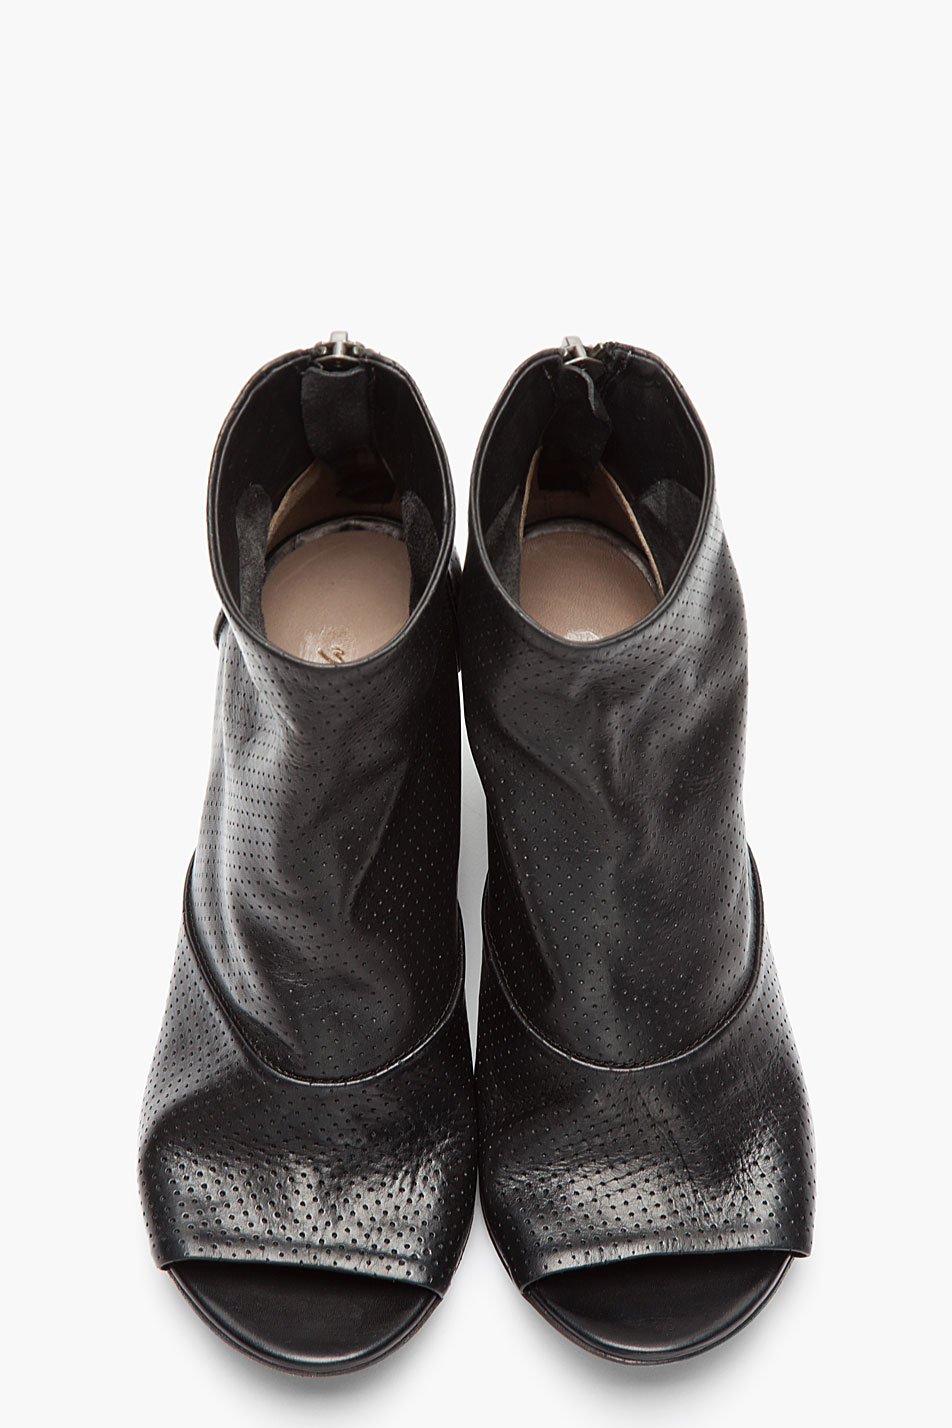 Lyst Mars 232 Ll Black Leather Open Toe Perforated Zip Ankle